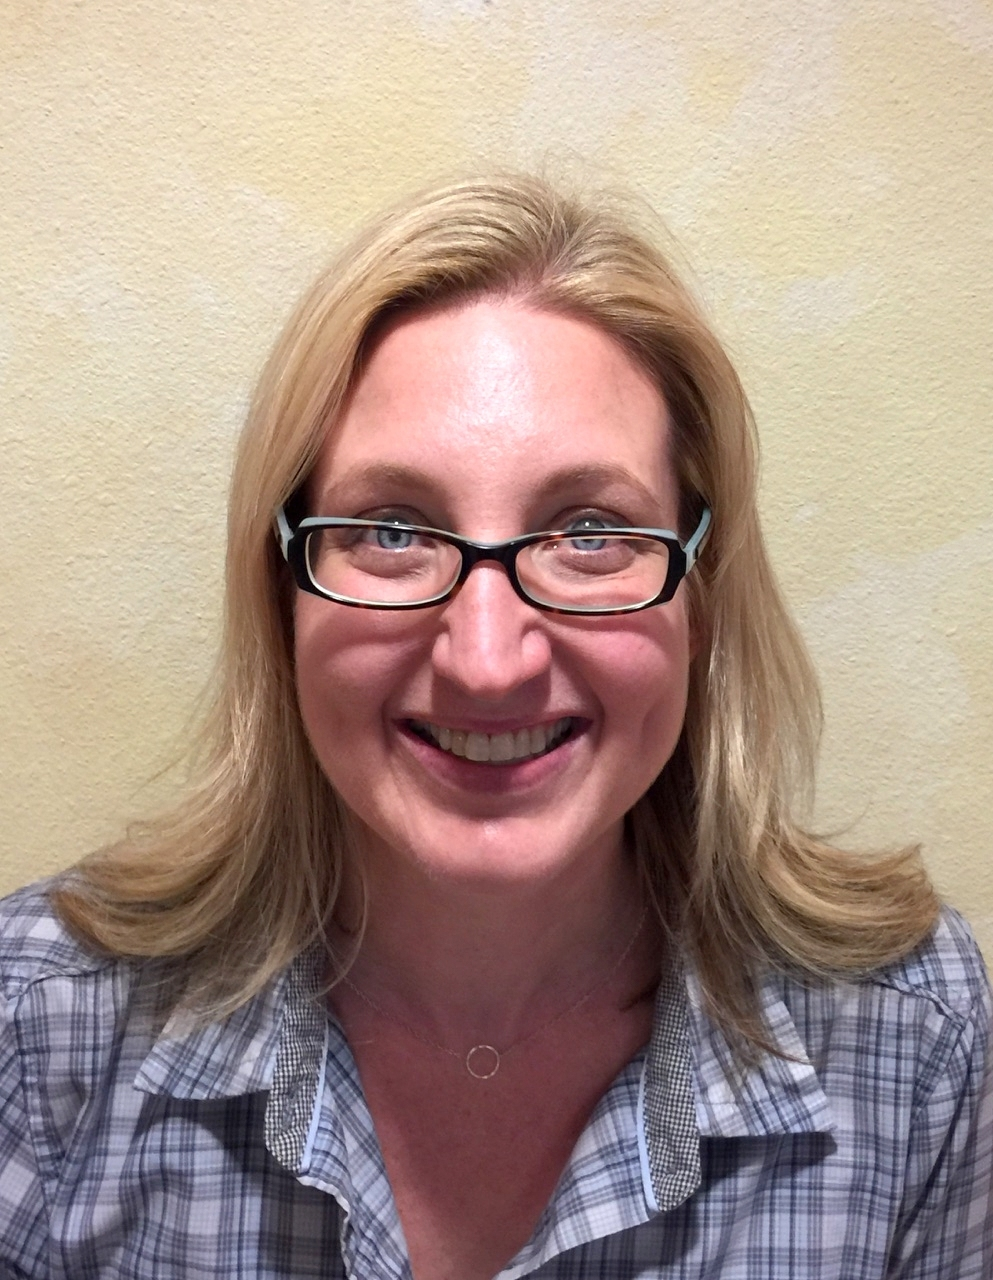 Gig harbor physical therapy - Lara Is A Graduate Of The University Of Puget Sound Before She Managed The Office Her Background As Our Physical Therapy